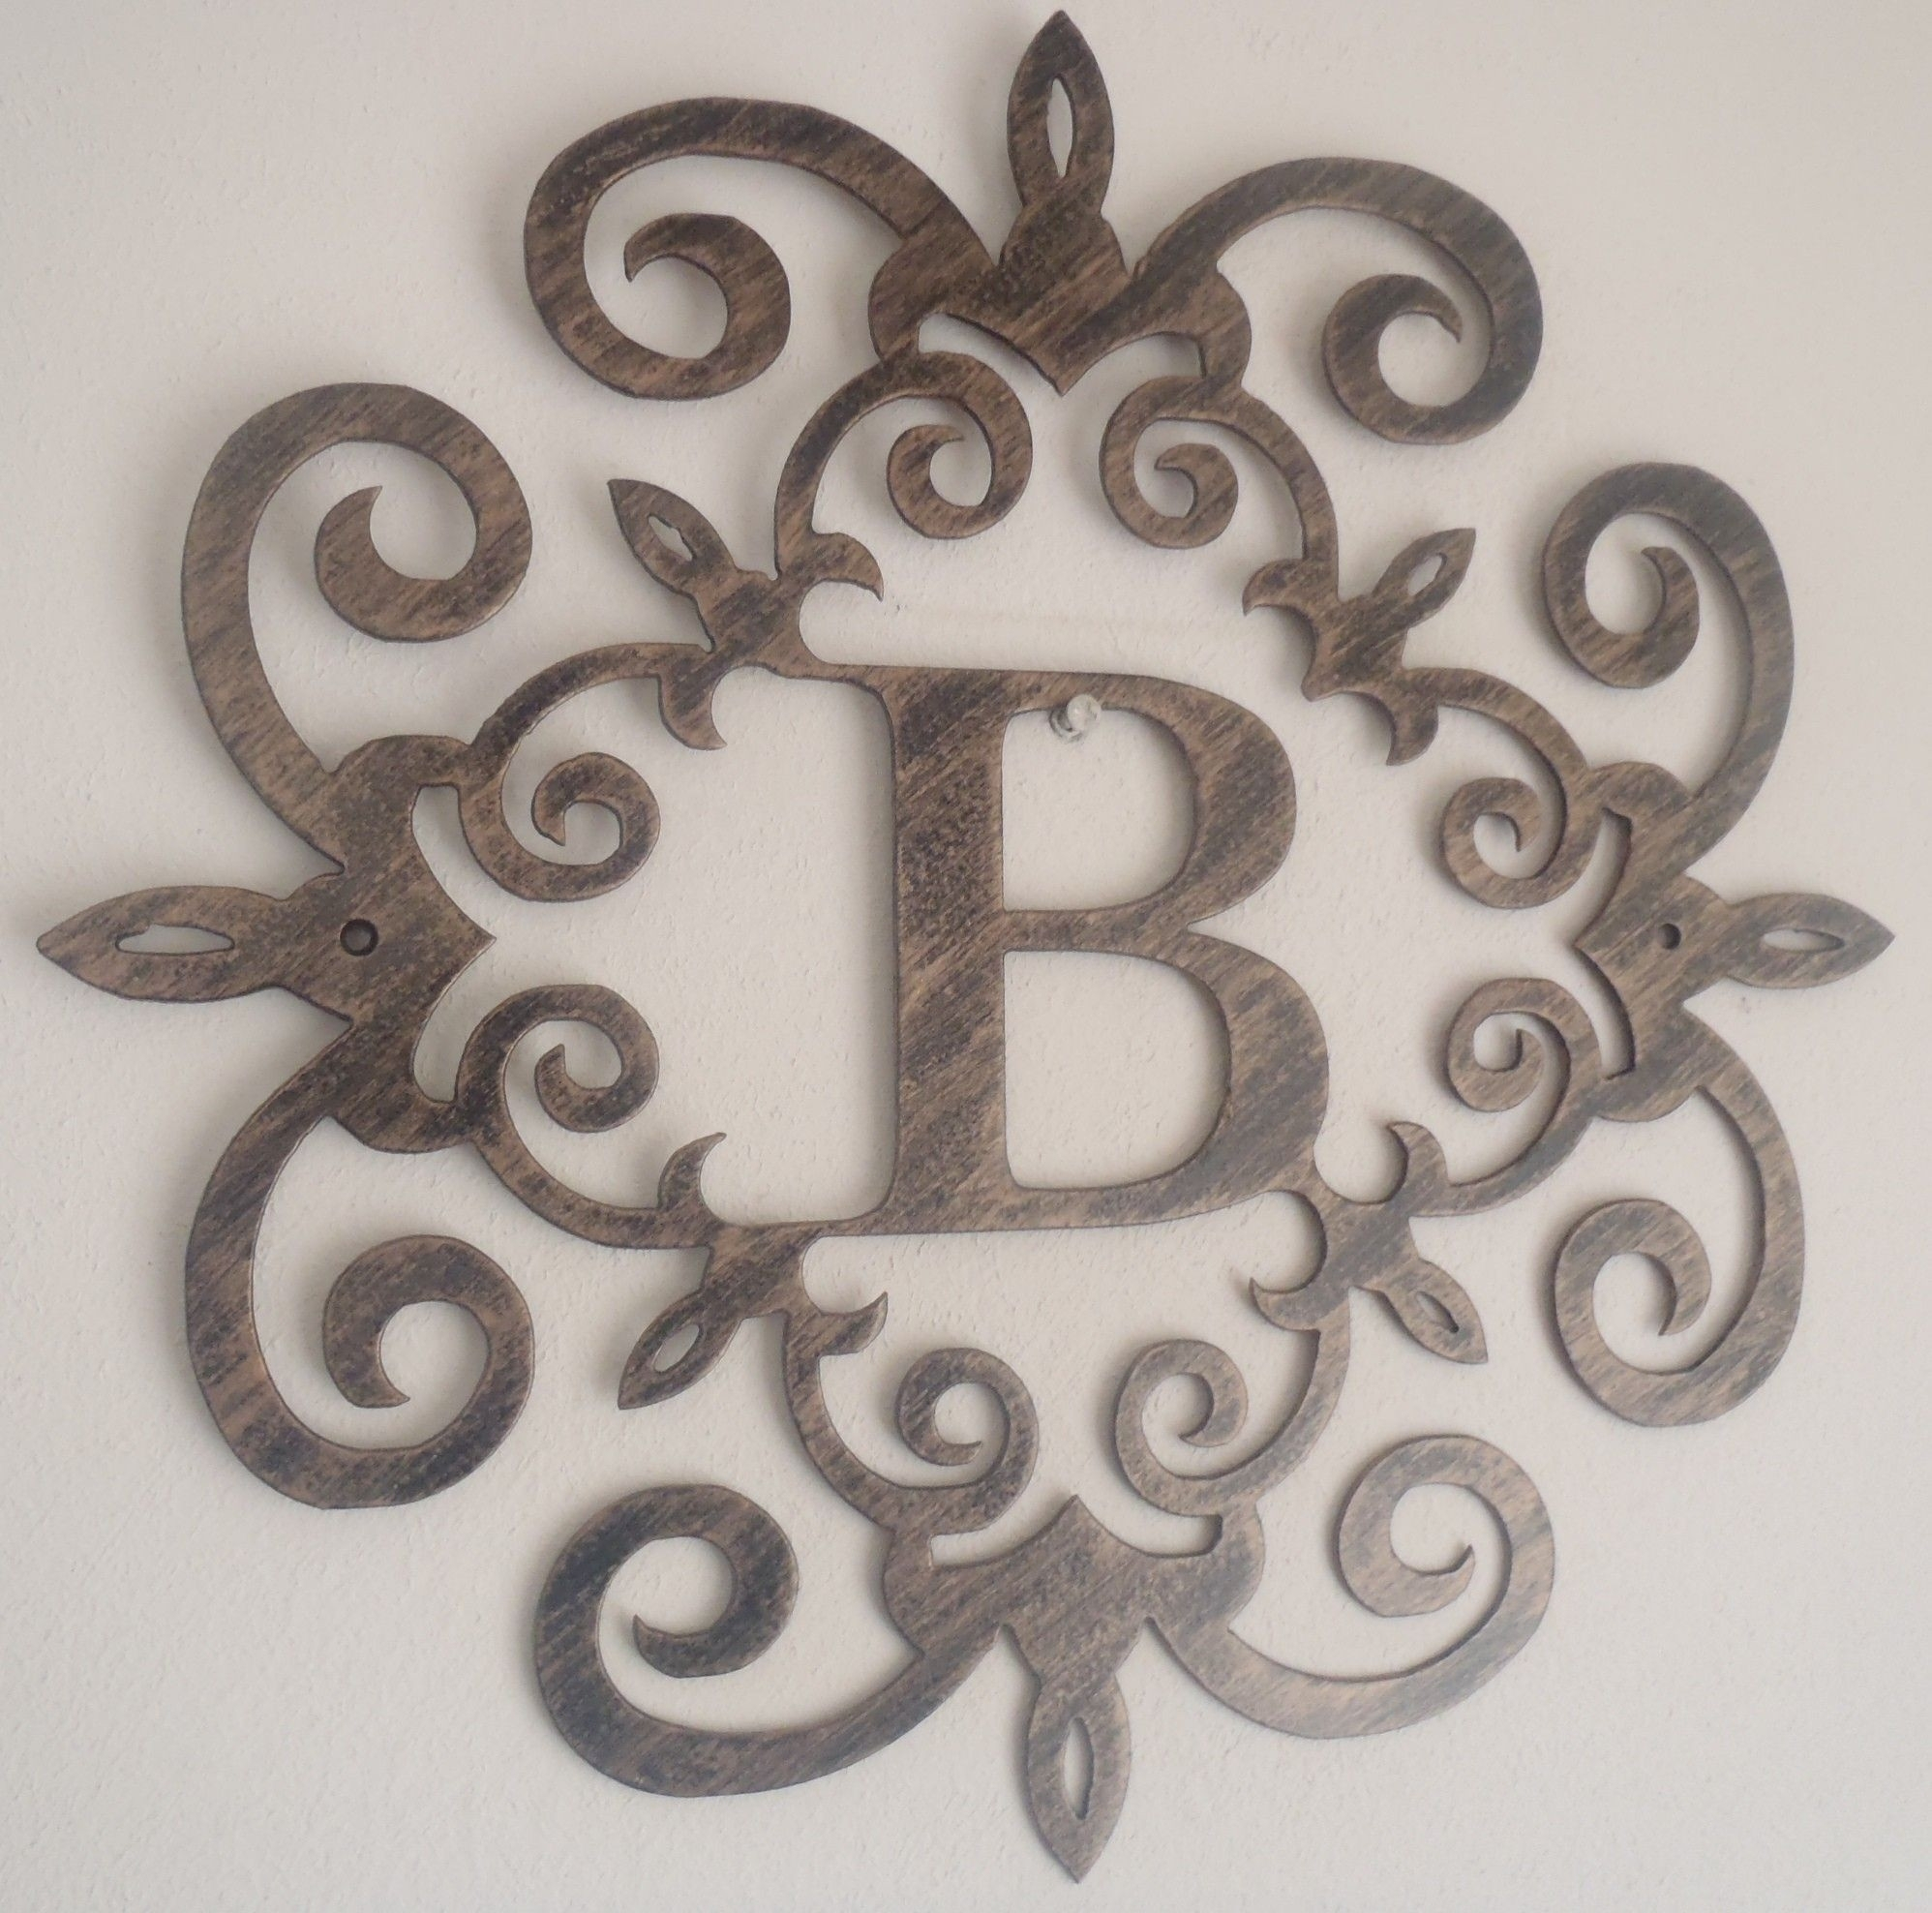 Unique Large Monogram Letters Wall Decor | Northstarpilates in Most Popular Metal Letter Wall Art